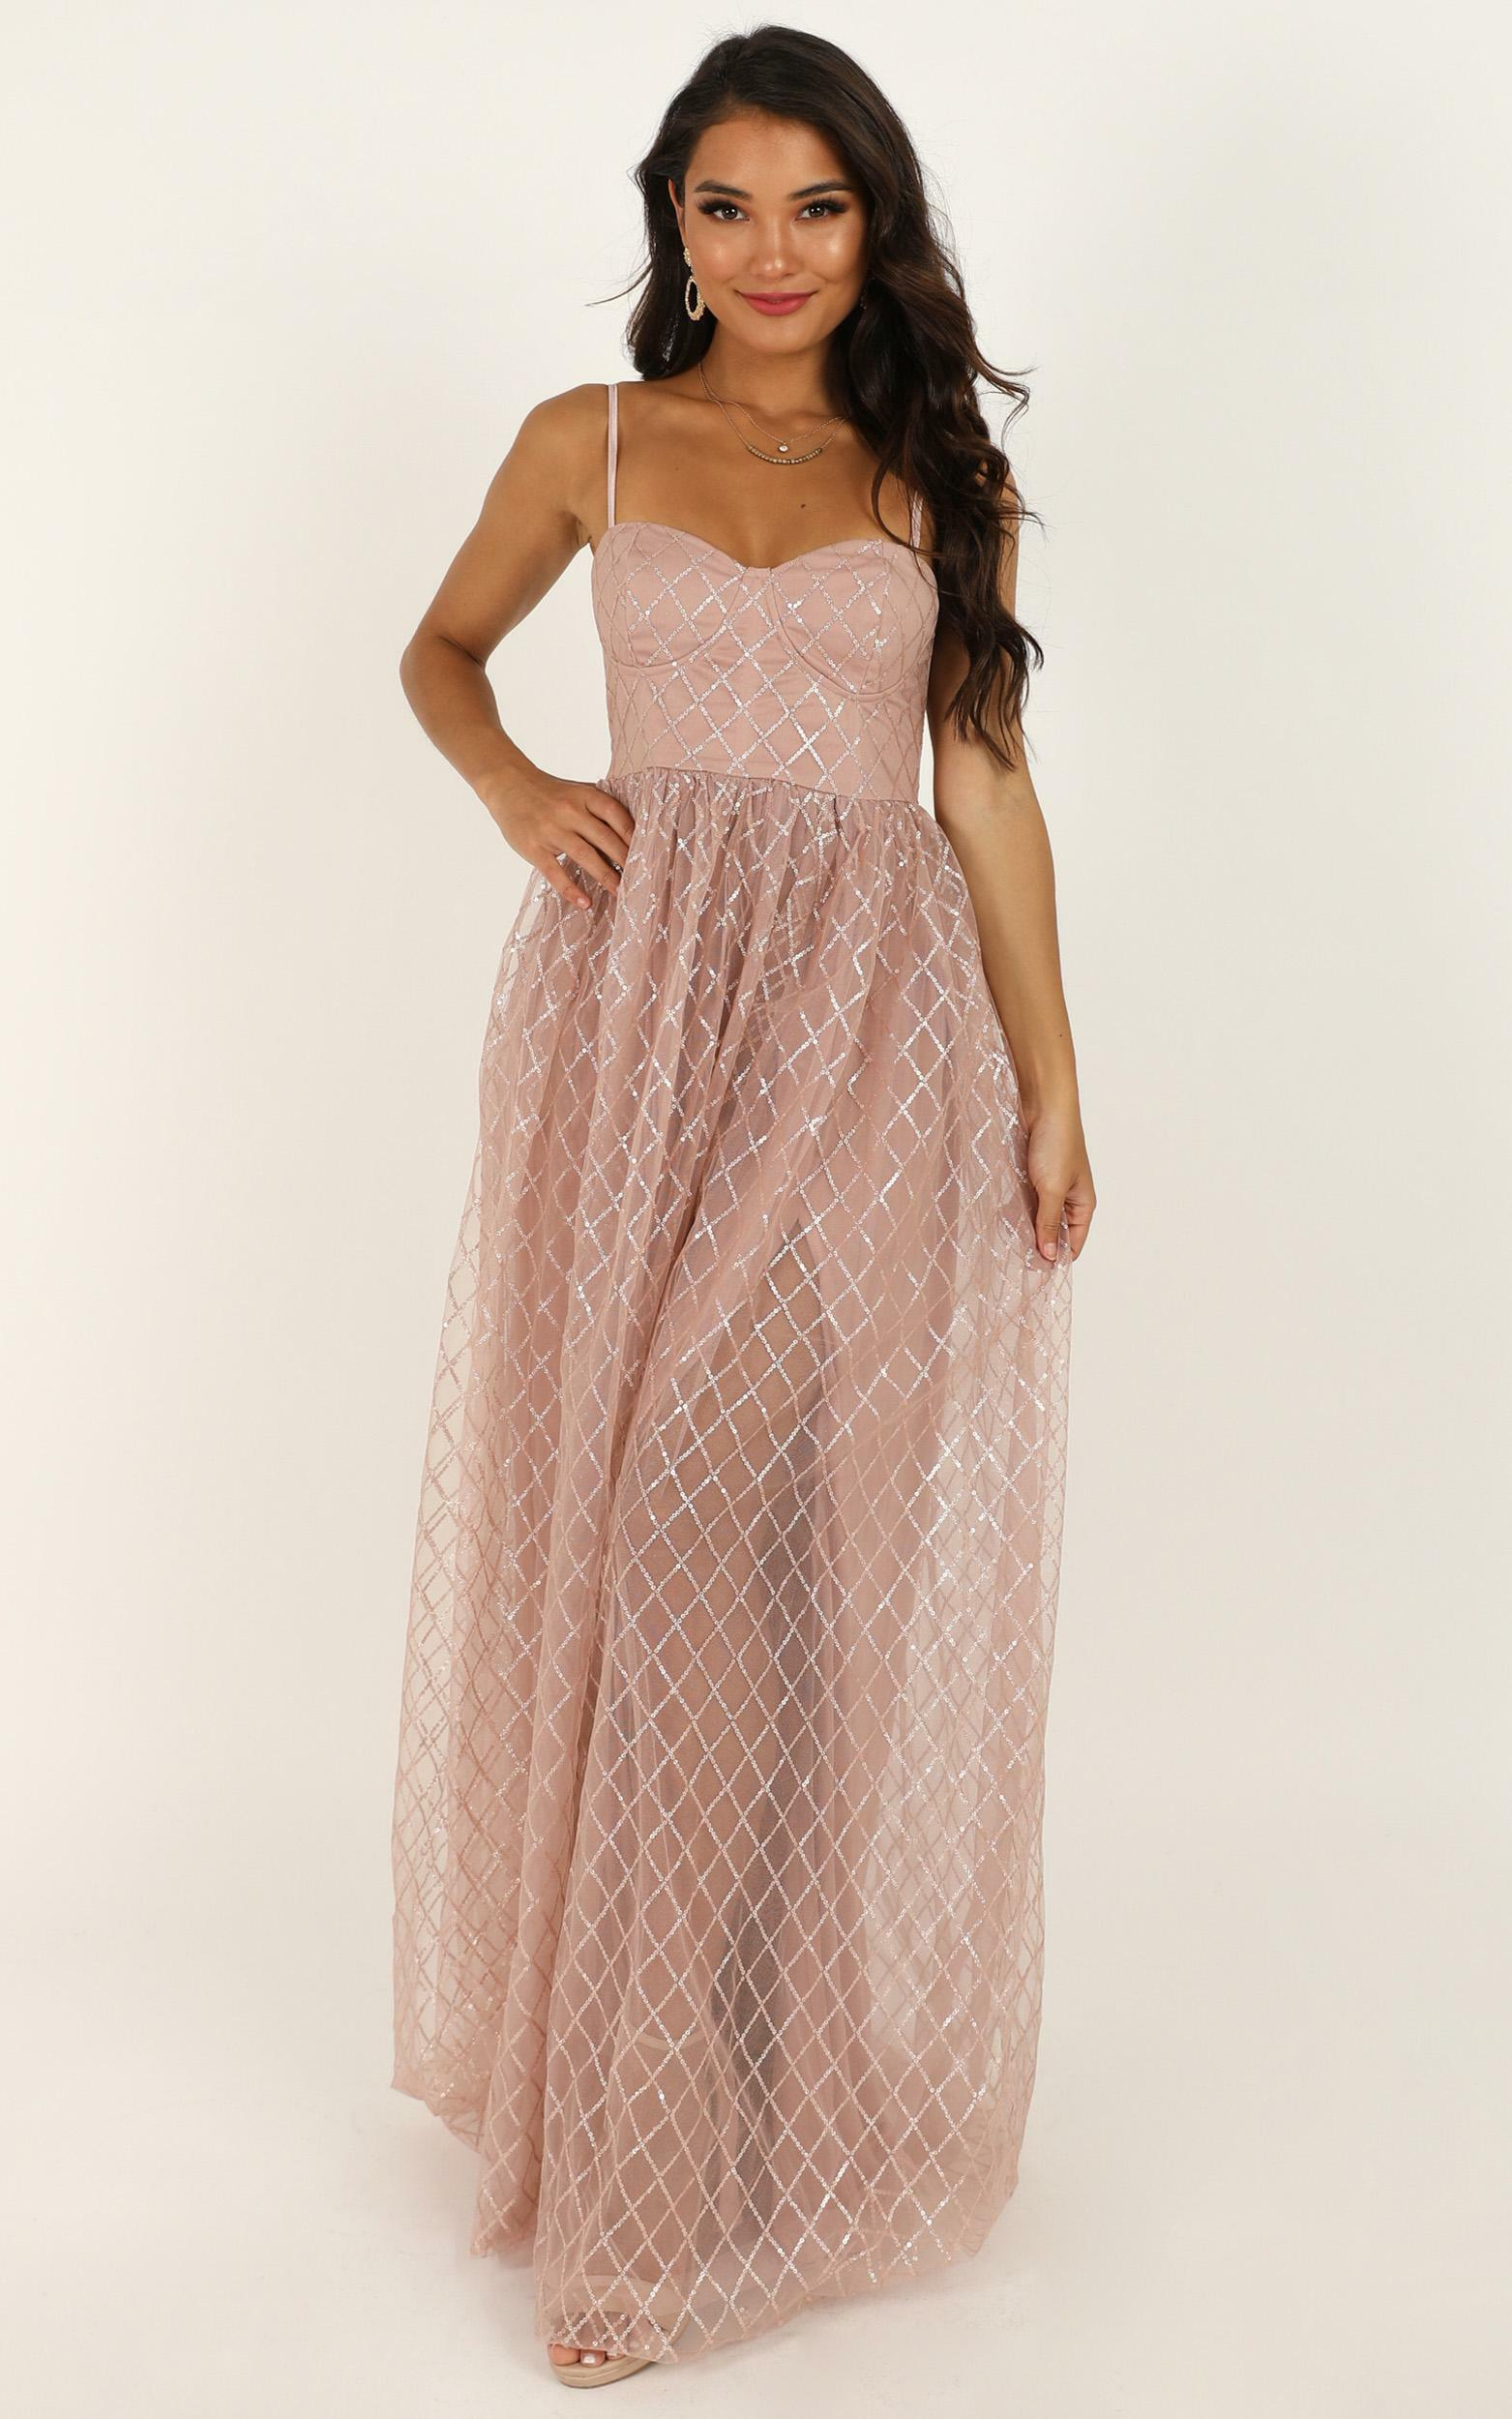 Sparkle With Love Dress in blush glitter - 18 (XXXL), Rose Gold, hi-res image number null